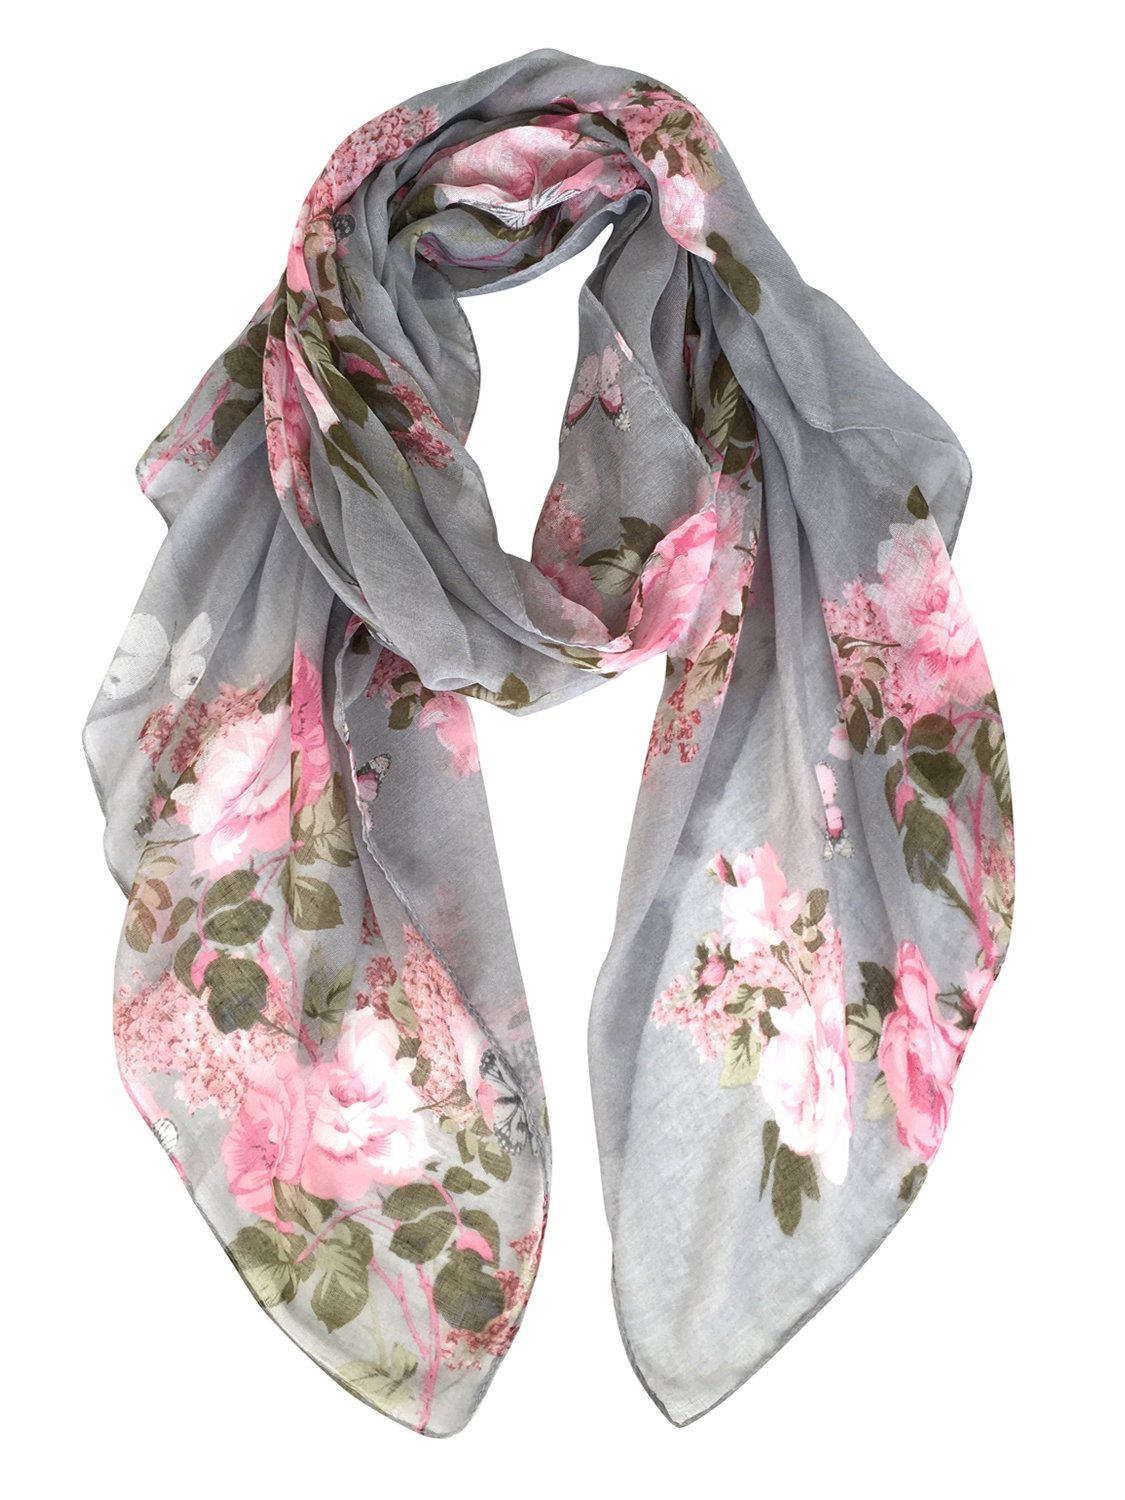 GERINLY Lightweight Shawl Scarf: Peony Print Beach Wrap For Hawaiian Vacation (Grey) by GERINLY (Image #1)